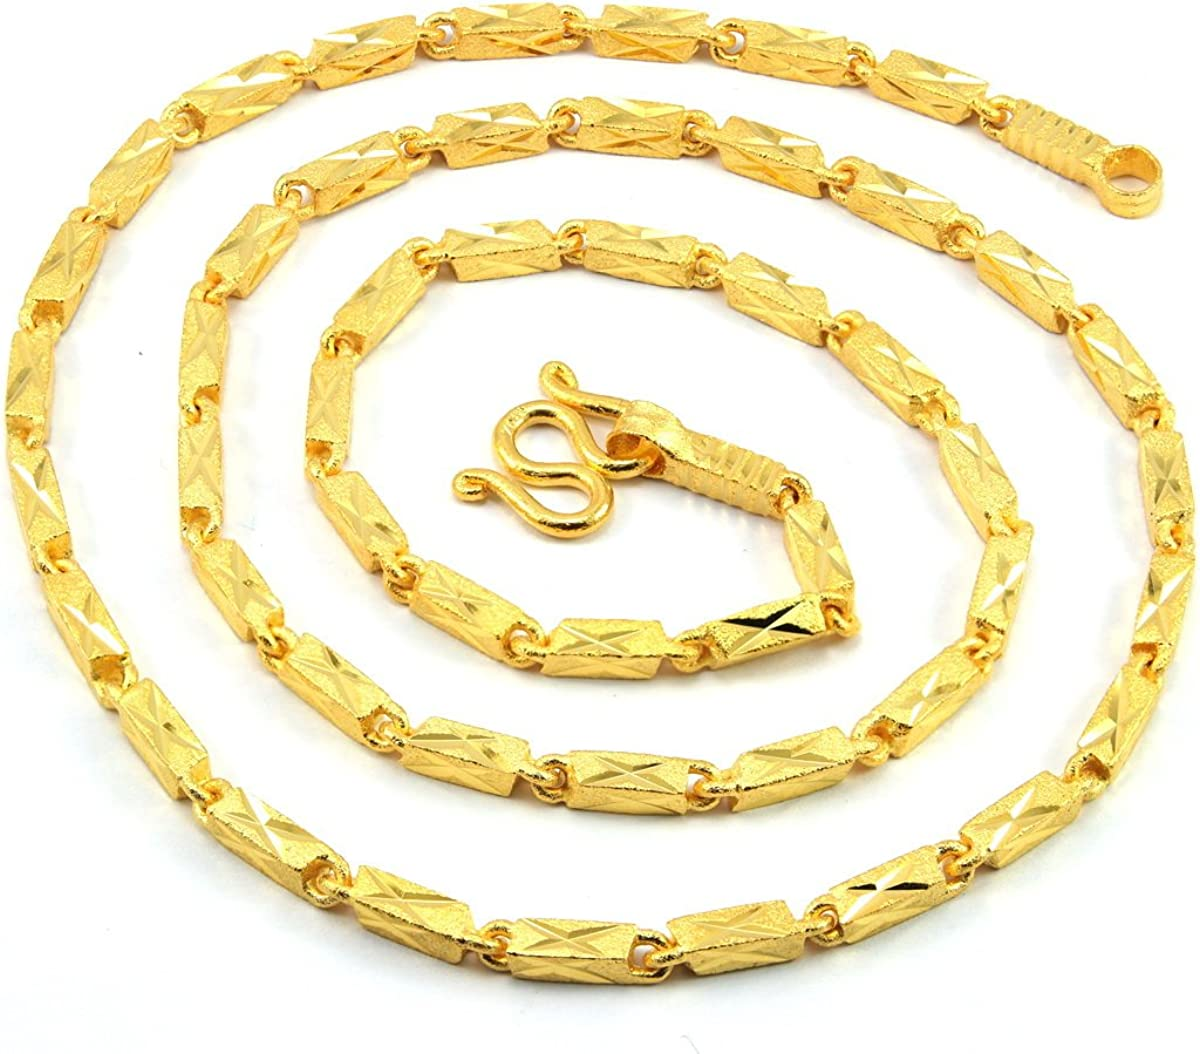 Awesome Men X Bar Link Baht Chain 24.5 inch 24k Gold Plated Thai Necklace Jewelry Thailand